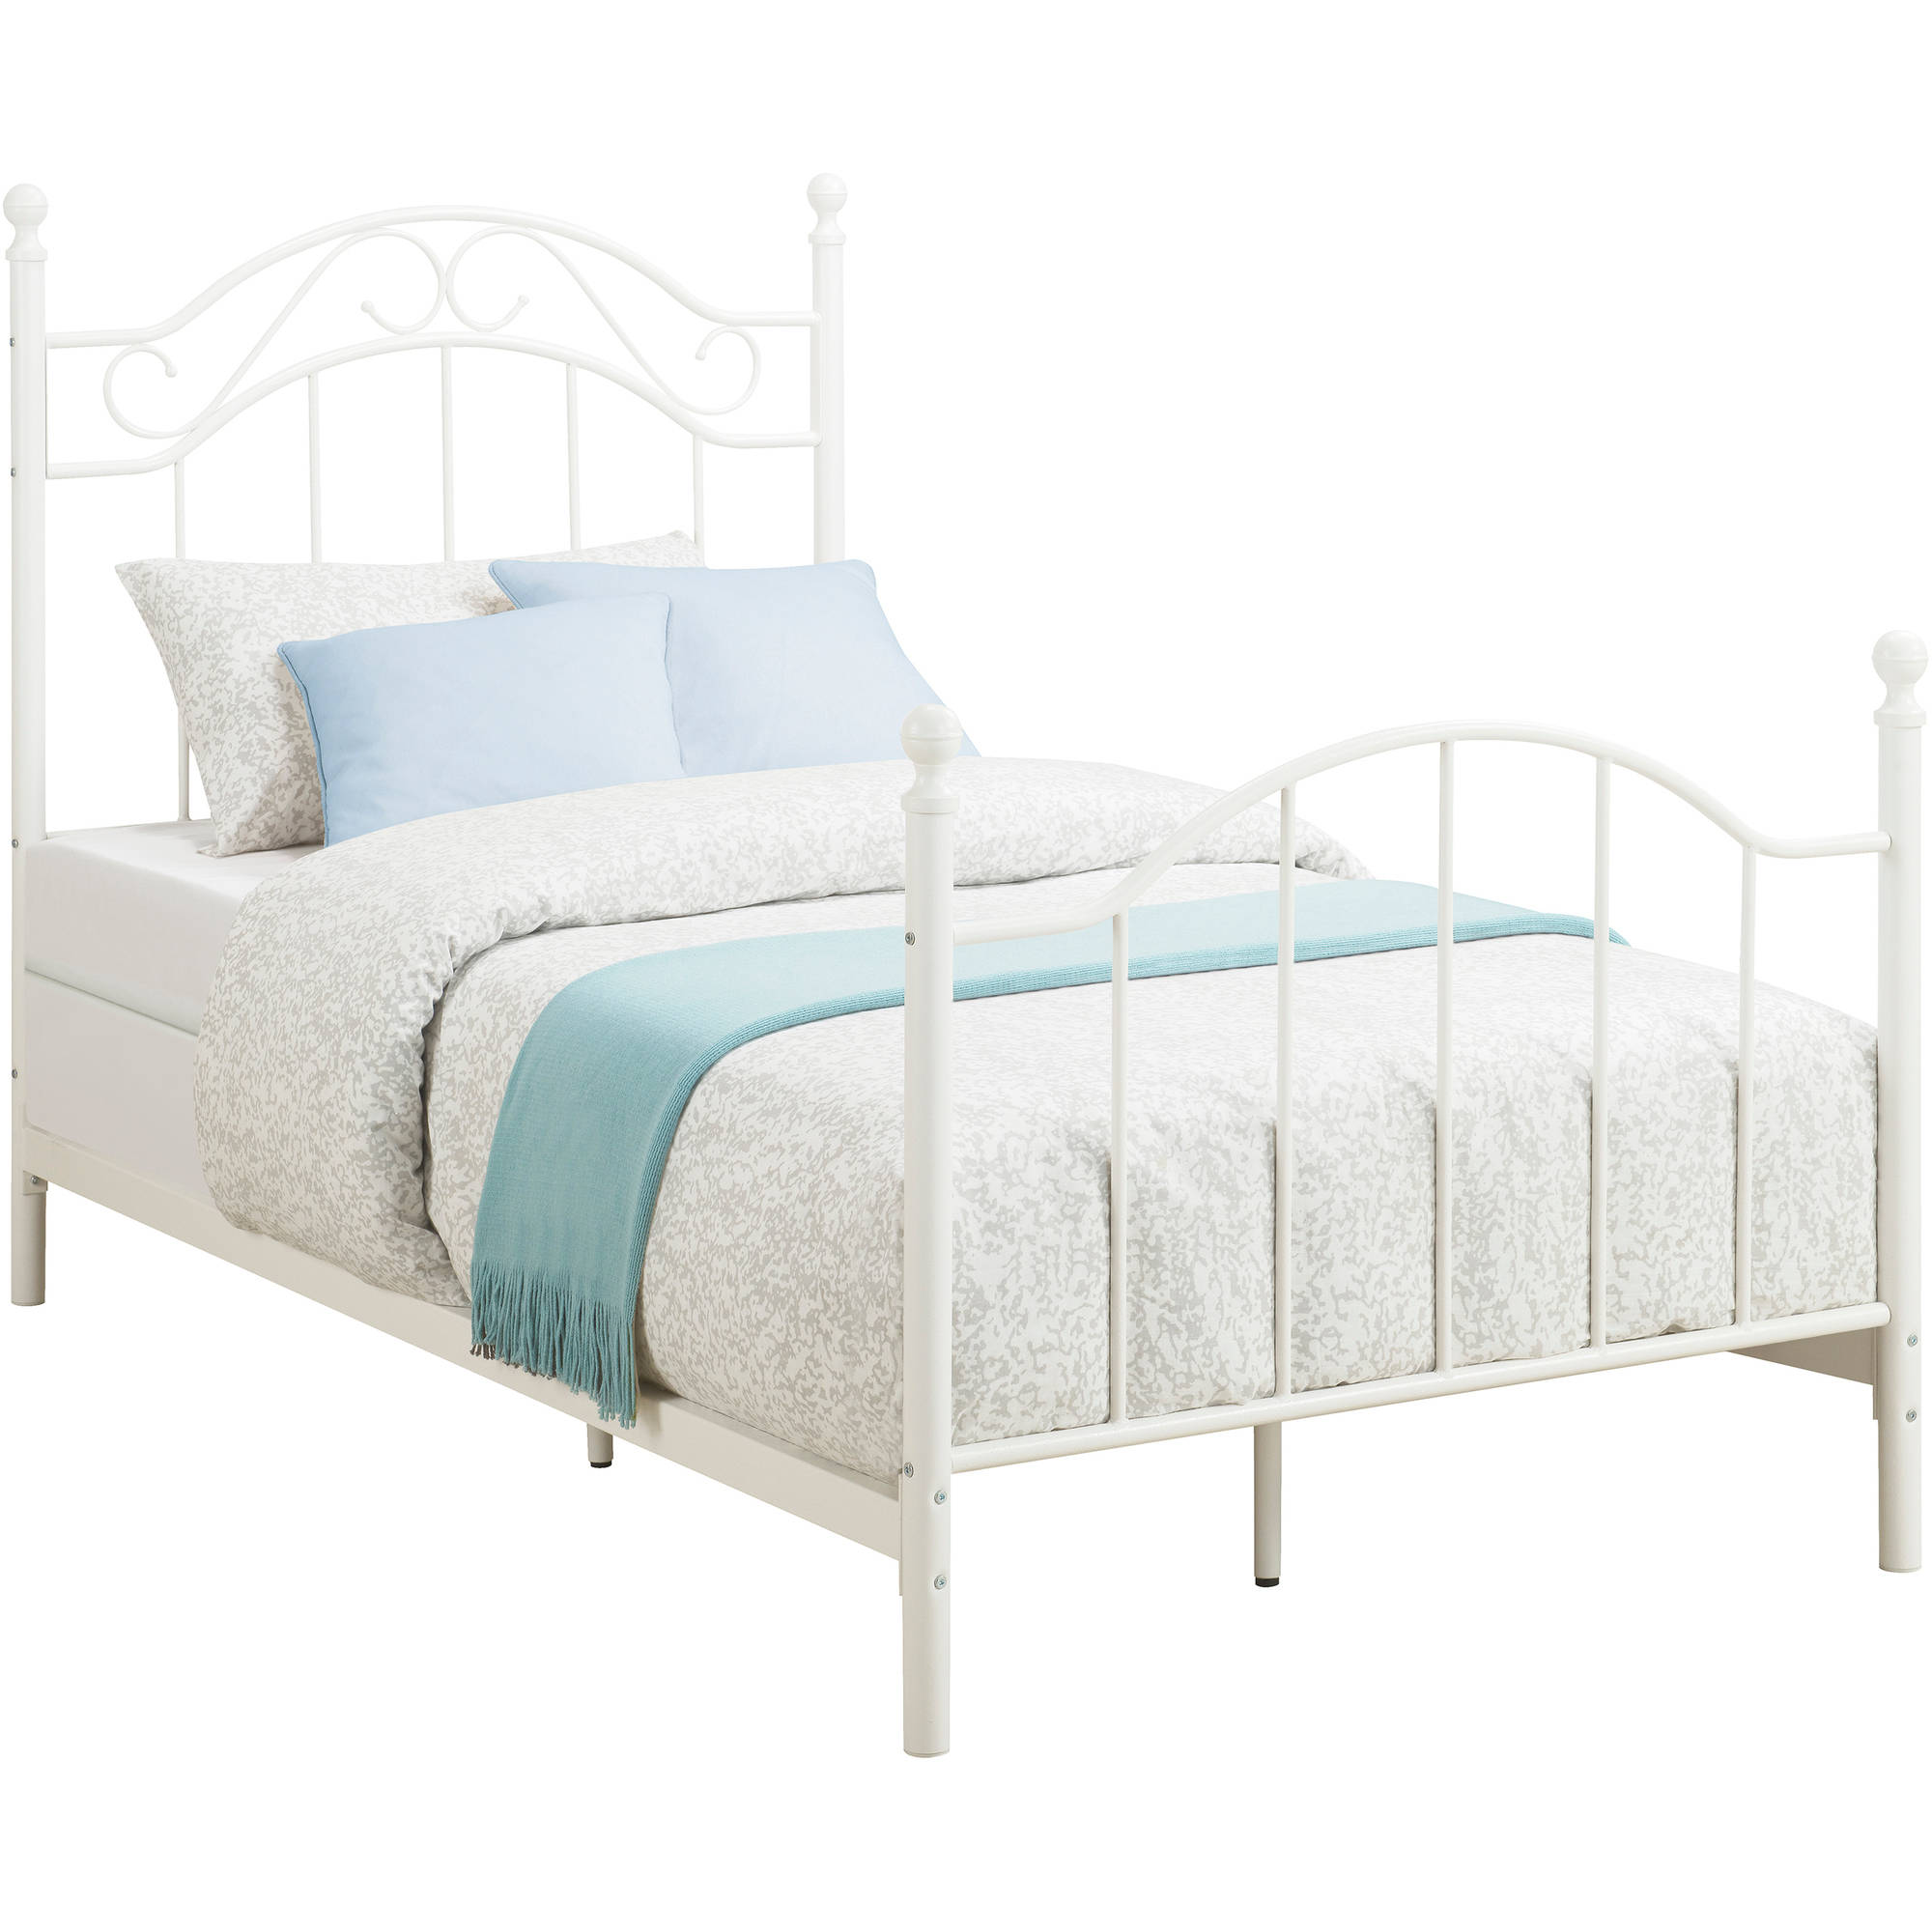 White Double Bed With Mattress Twin Metal Bed Daybeds Frame Footboard Headboard Girls